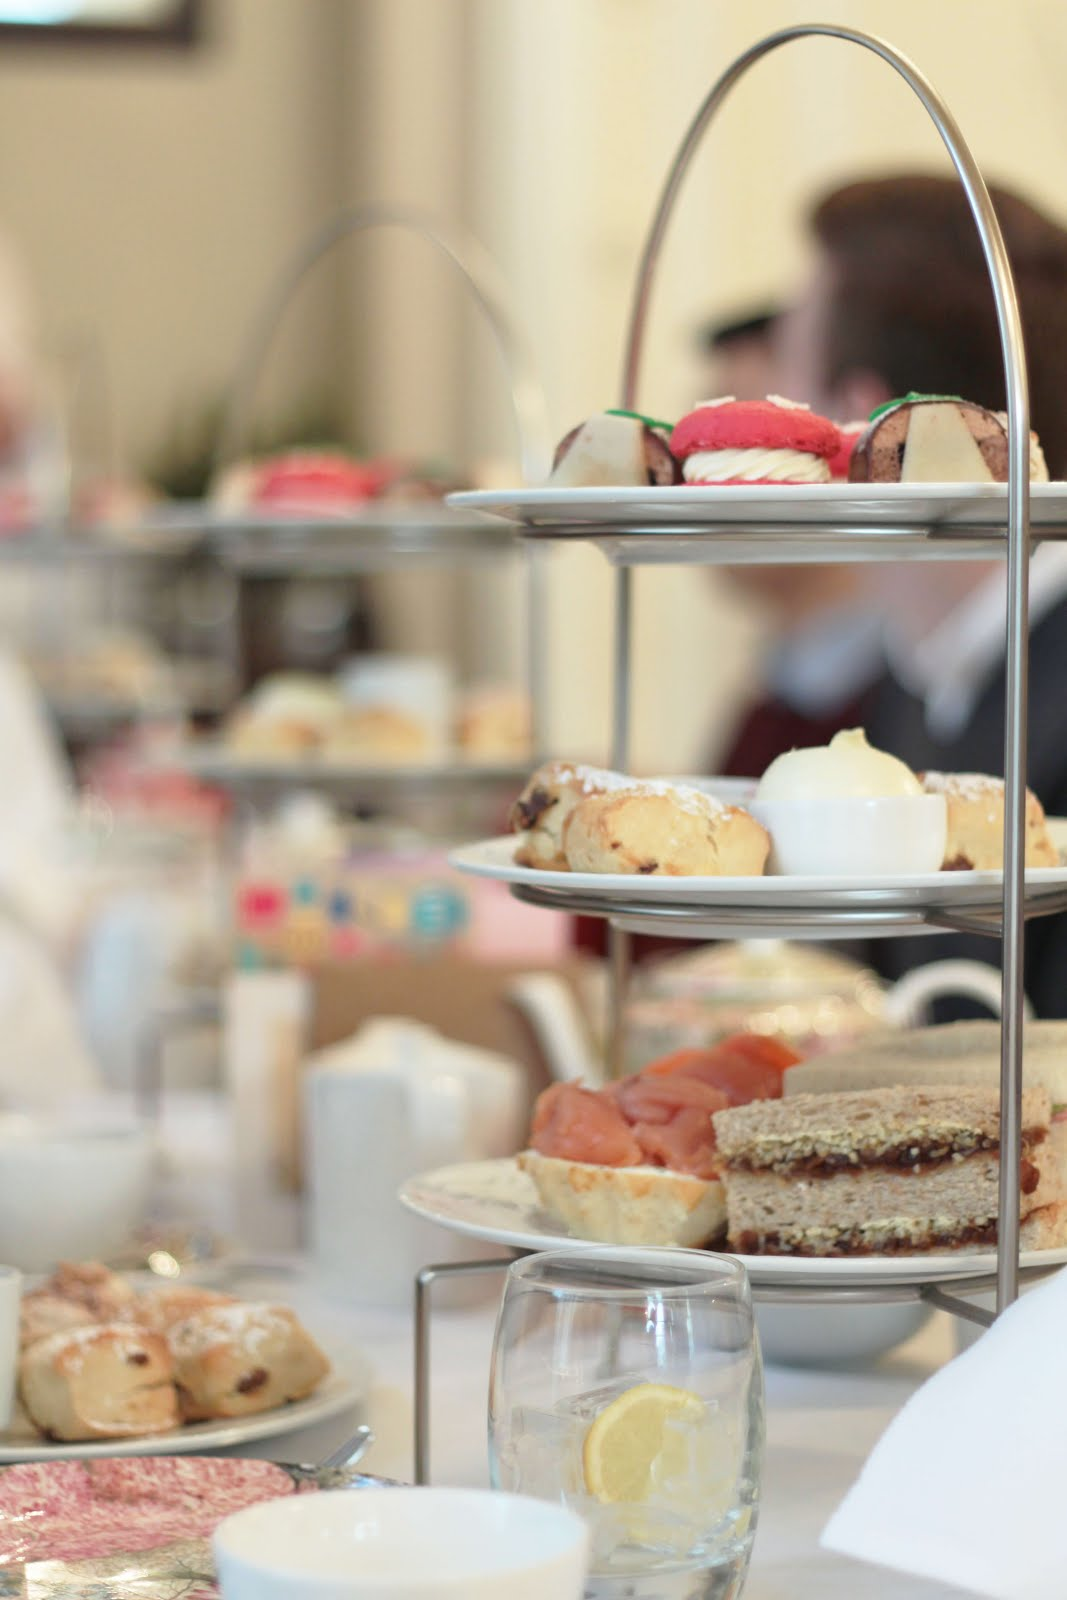 Hotel Amba Charing Cross Afternoon Tea Review